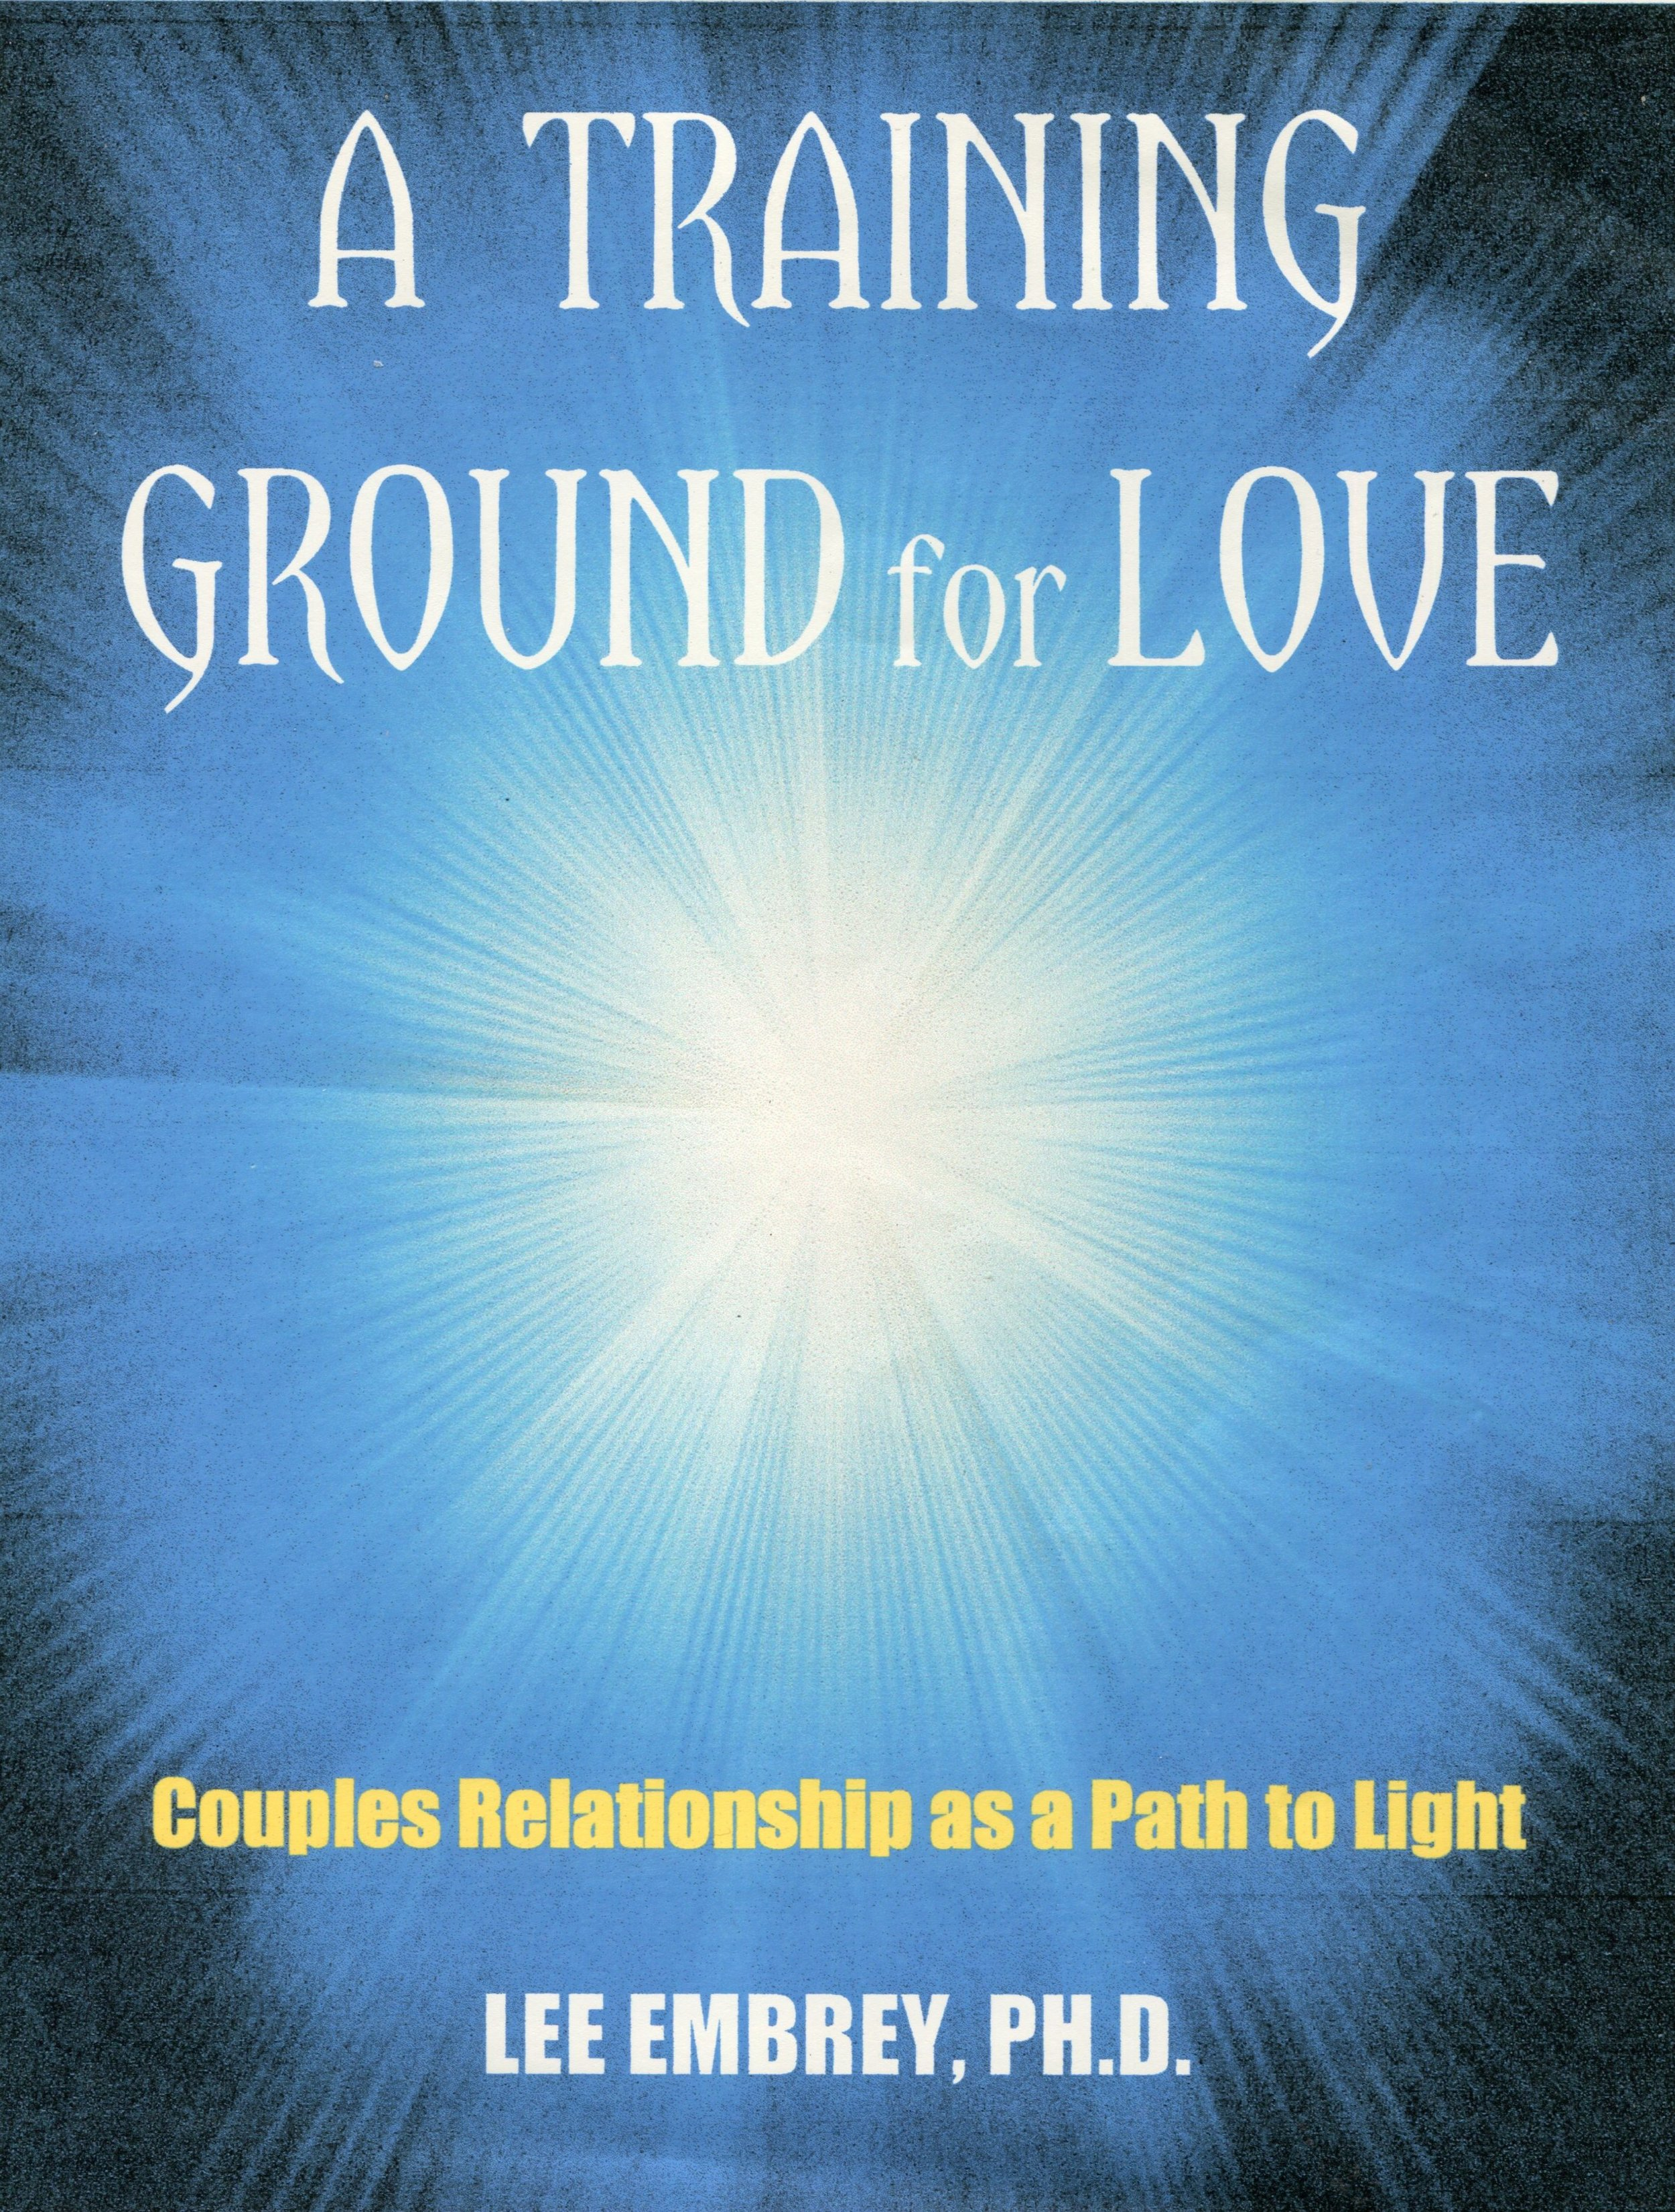 Self-publishing - Training Ground for Love.jpg